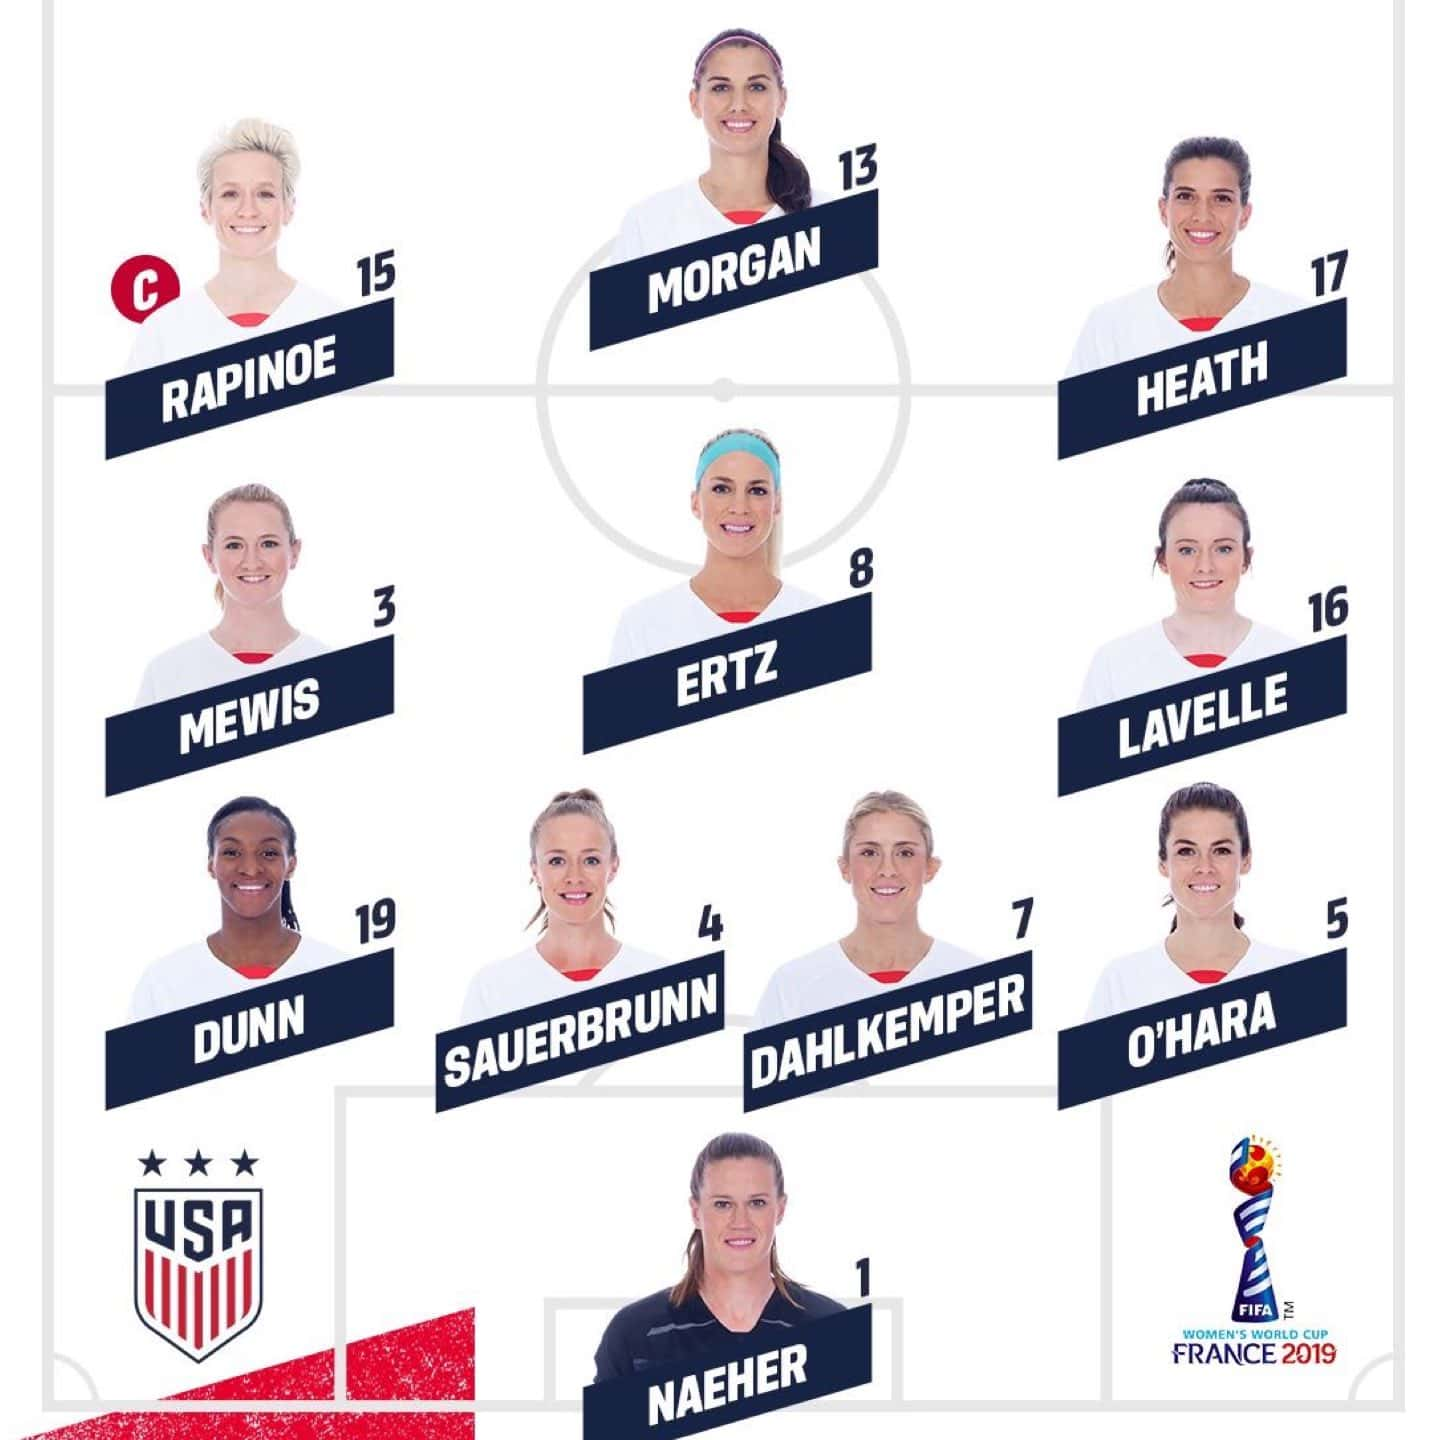 World Cup 2019: USA vs Spain - Lineup, Schedule, TV Channels & Start Time